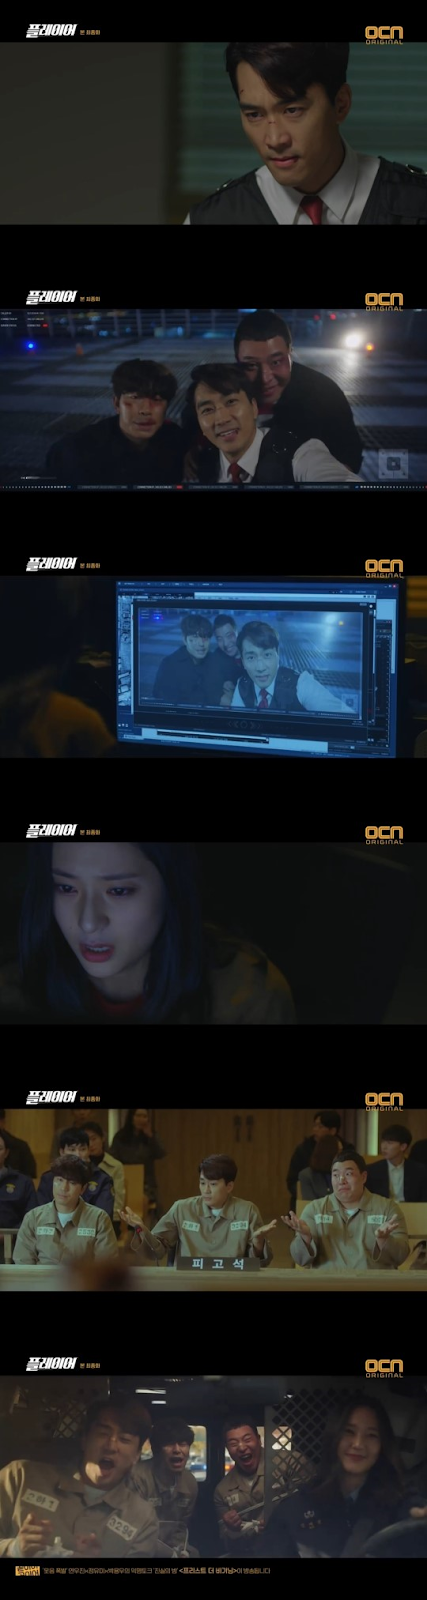 Player] FINALE Ep 14 spoilers, Song Seung Hun x Jung Soo